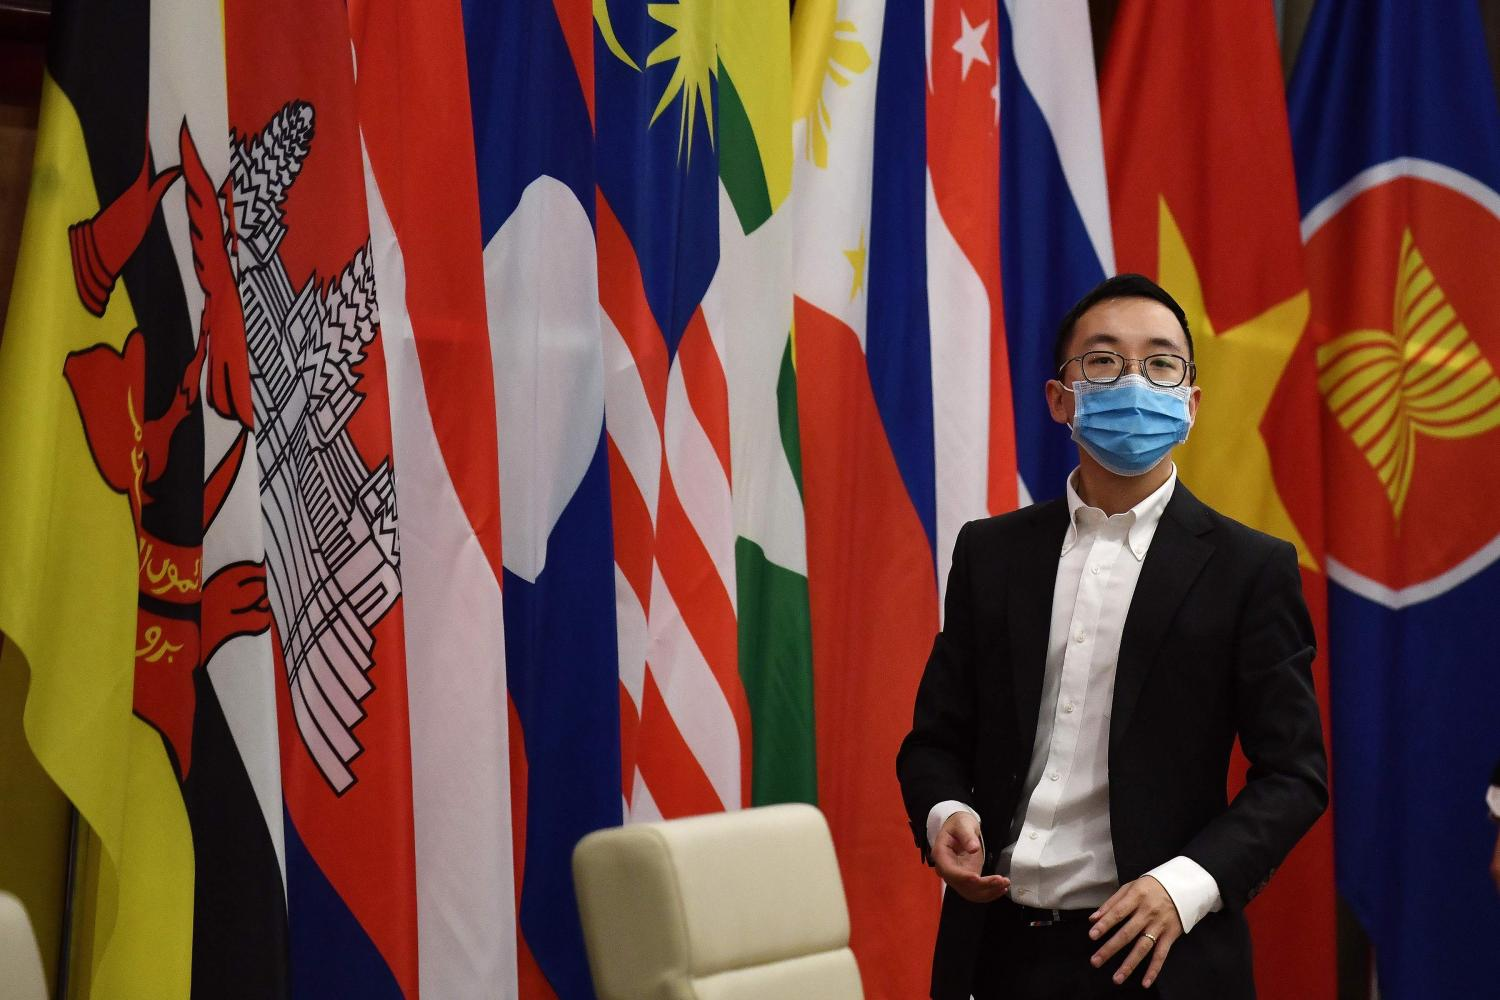 An official wearing a face mask stands next to member flags during the special Association of Southeast Asian Nations Summit on the coronavirus pandemic in Hanoi on April 14, 2020. (AFP photo)